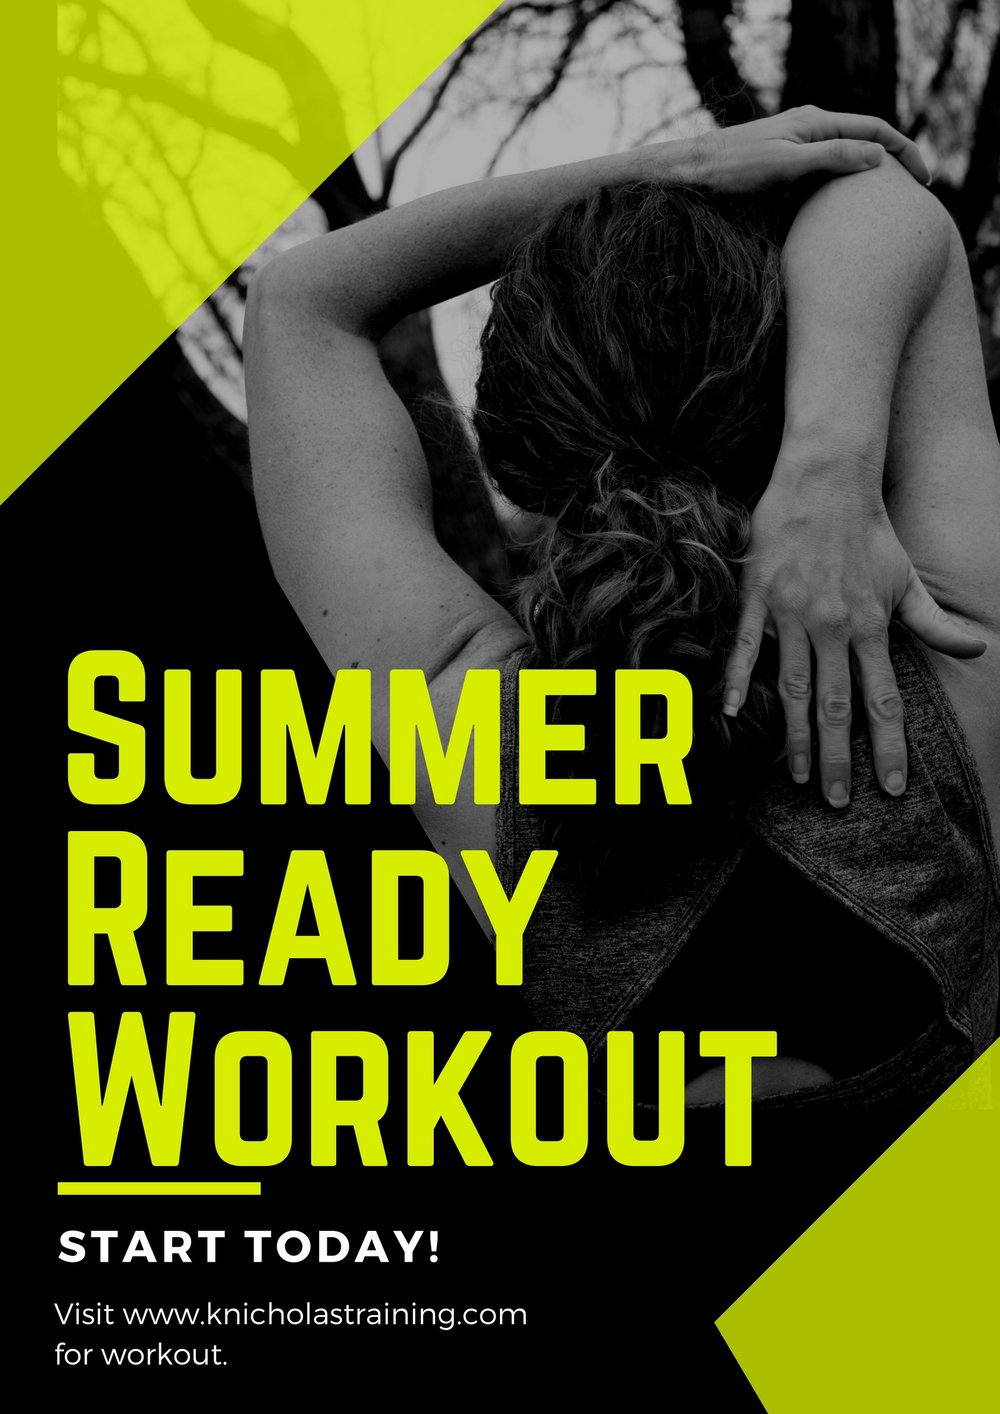 Summer-Ready Workout